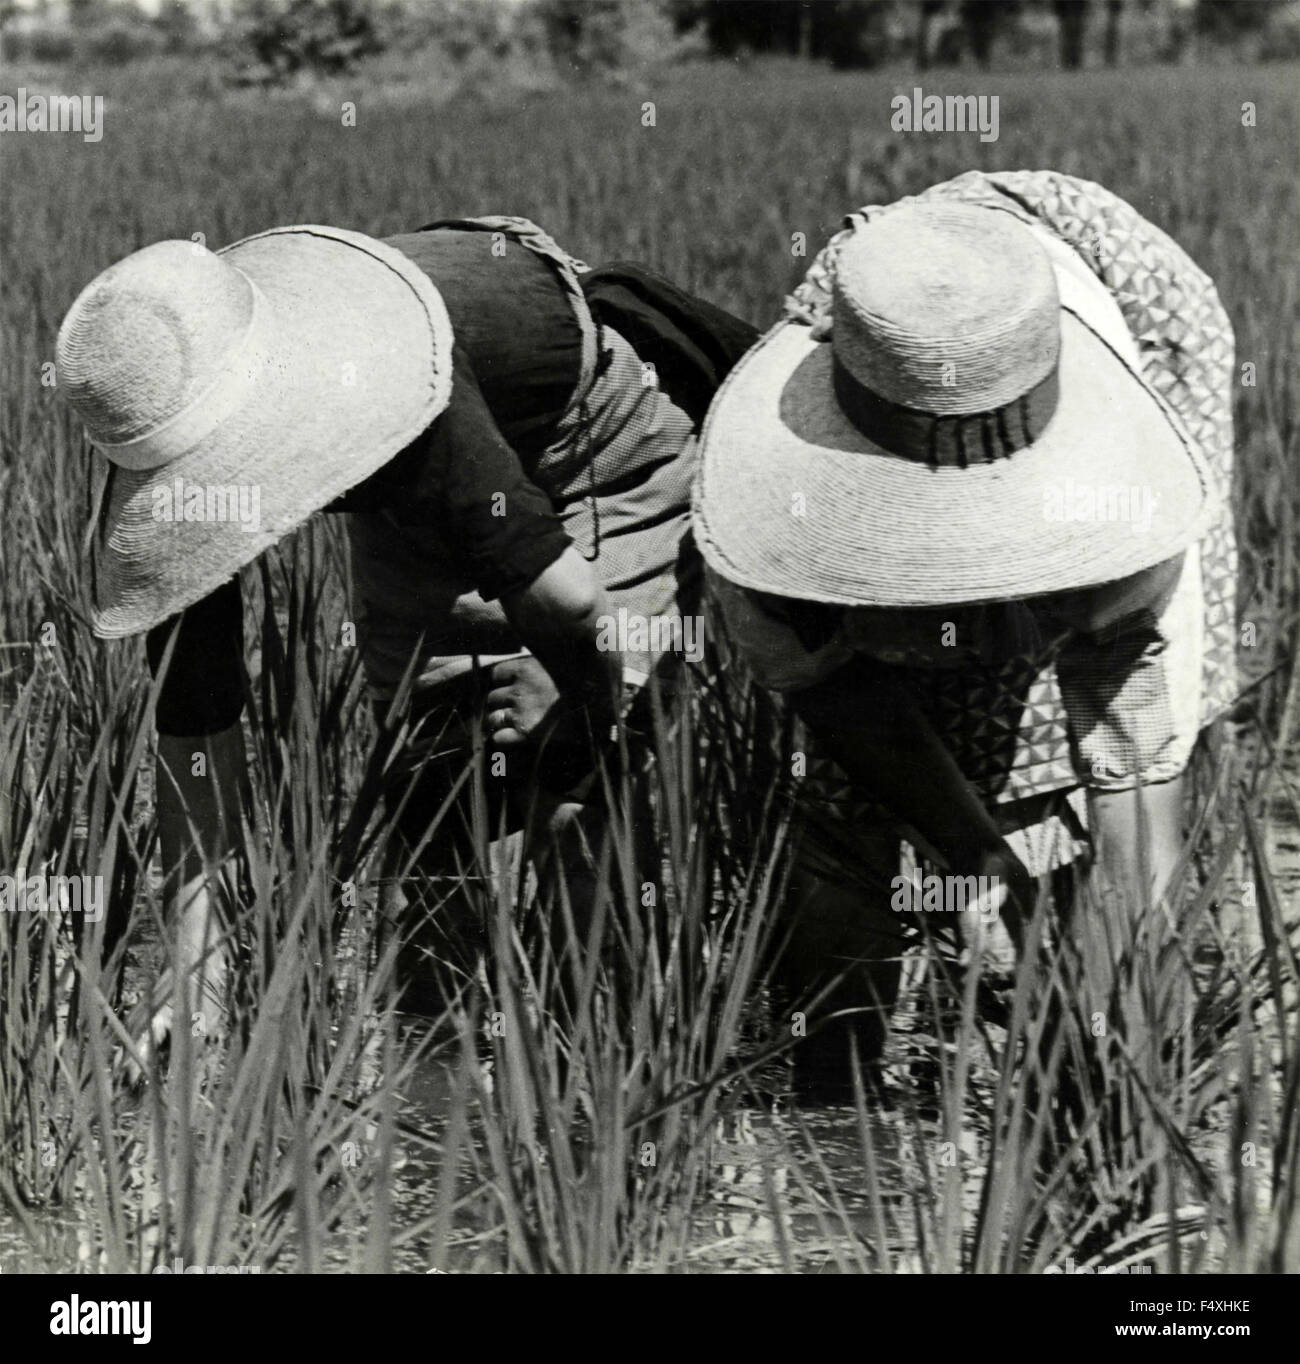 Two peasant women with big straw hats bowed to weed, Italy - Stock Image